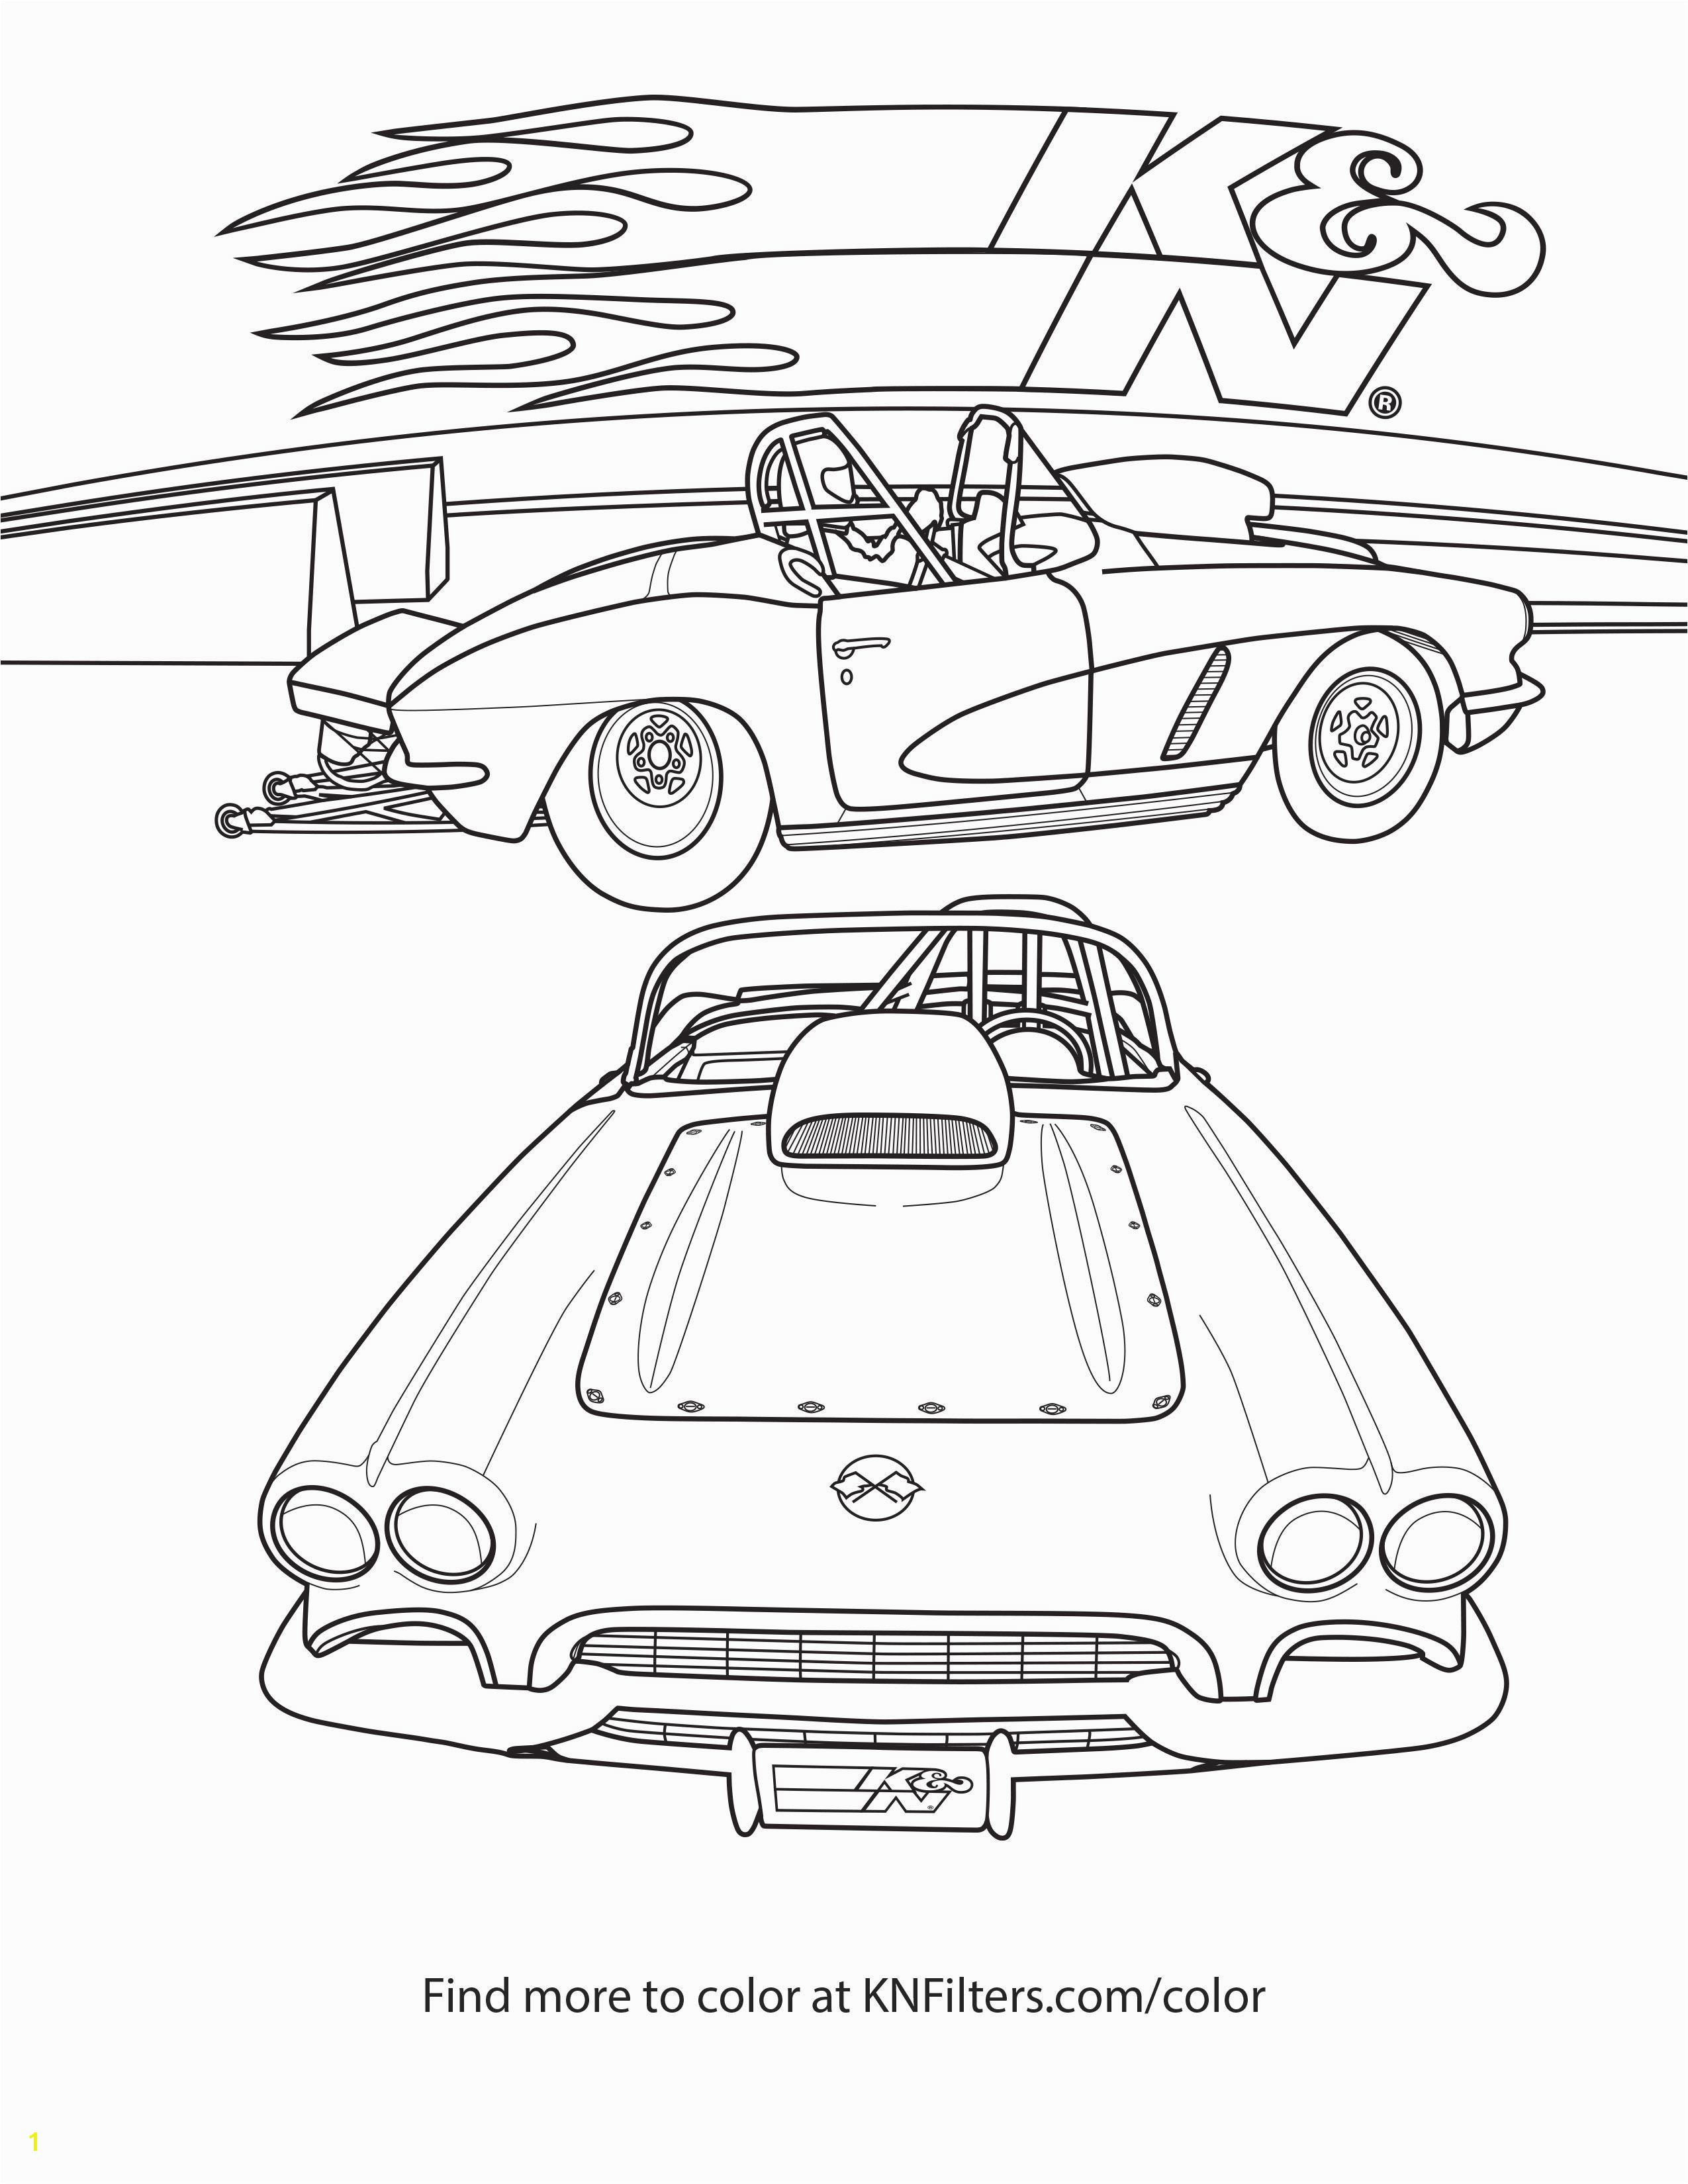 Chevrolet Corvette K&N Printable Coloring Page